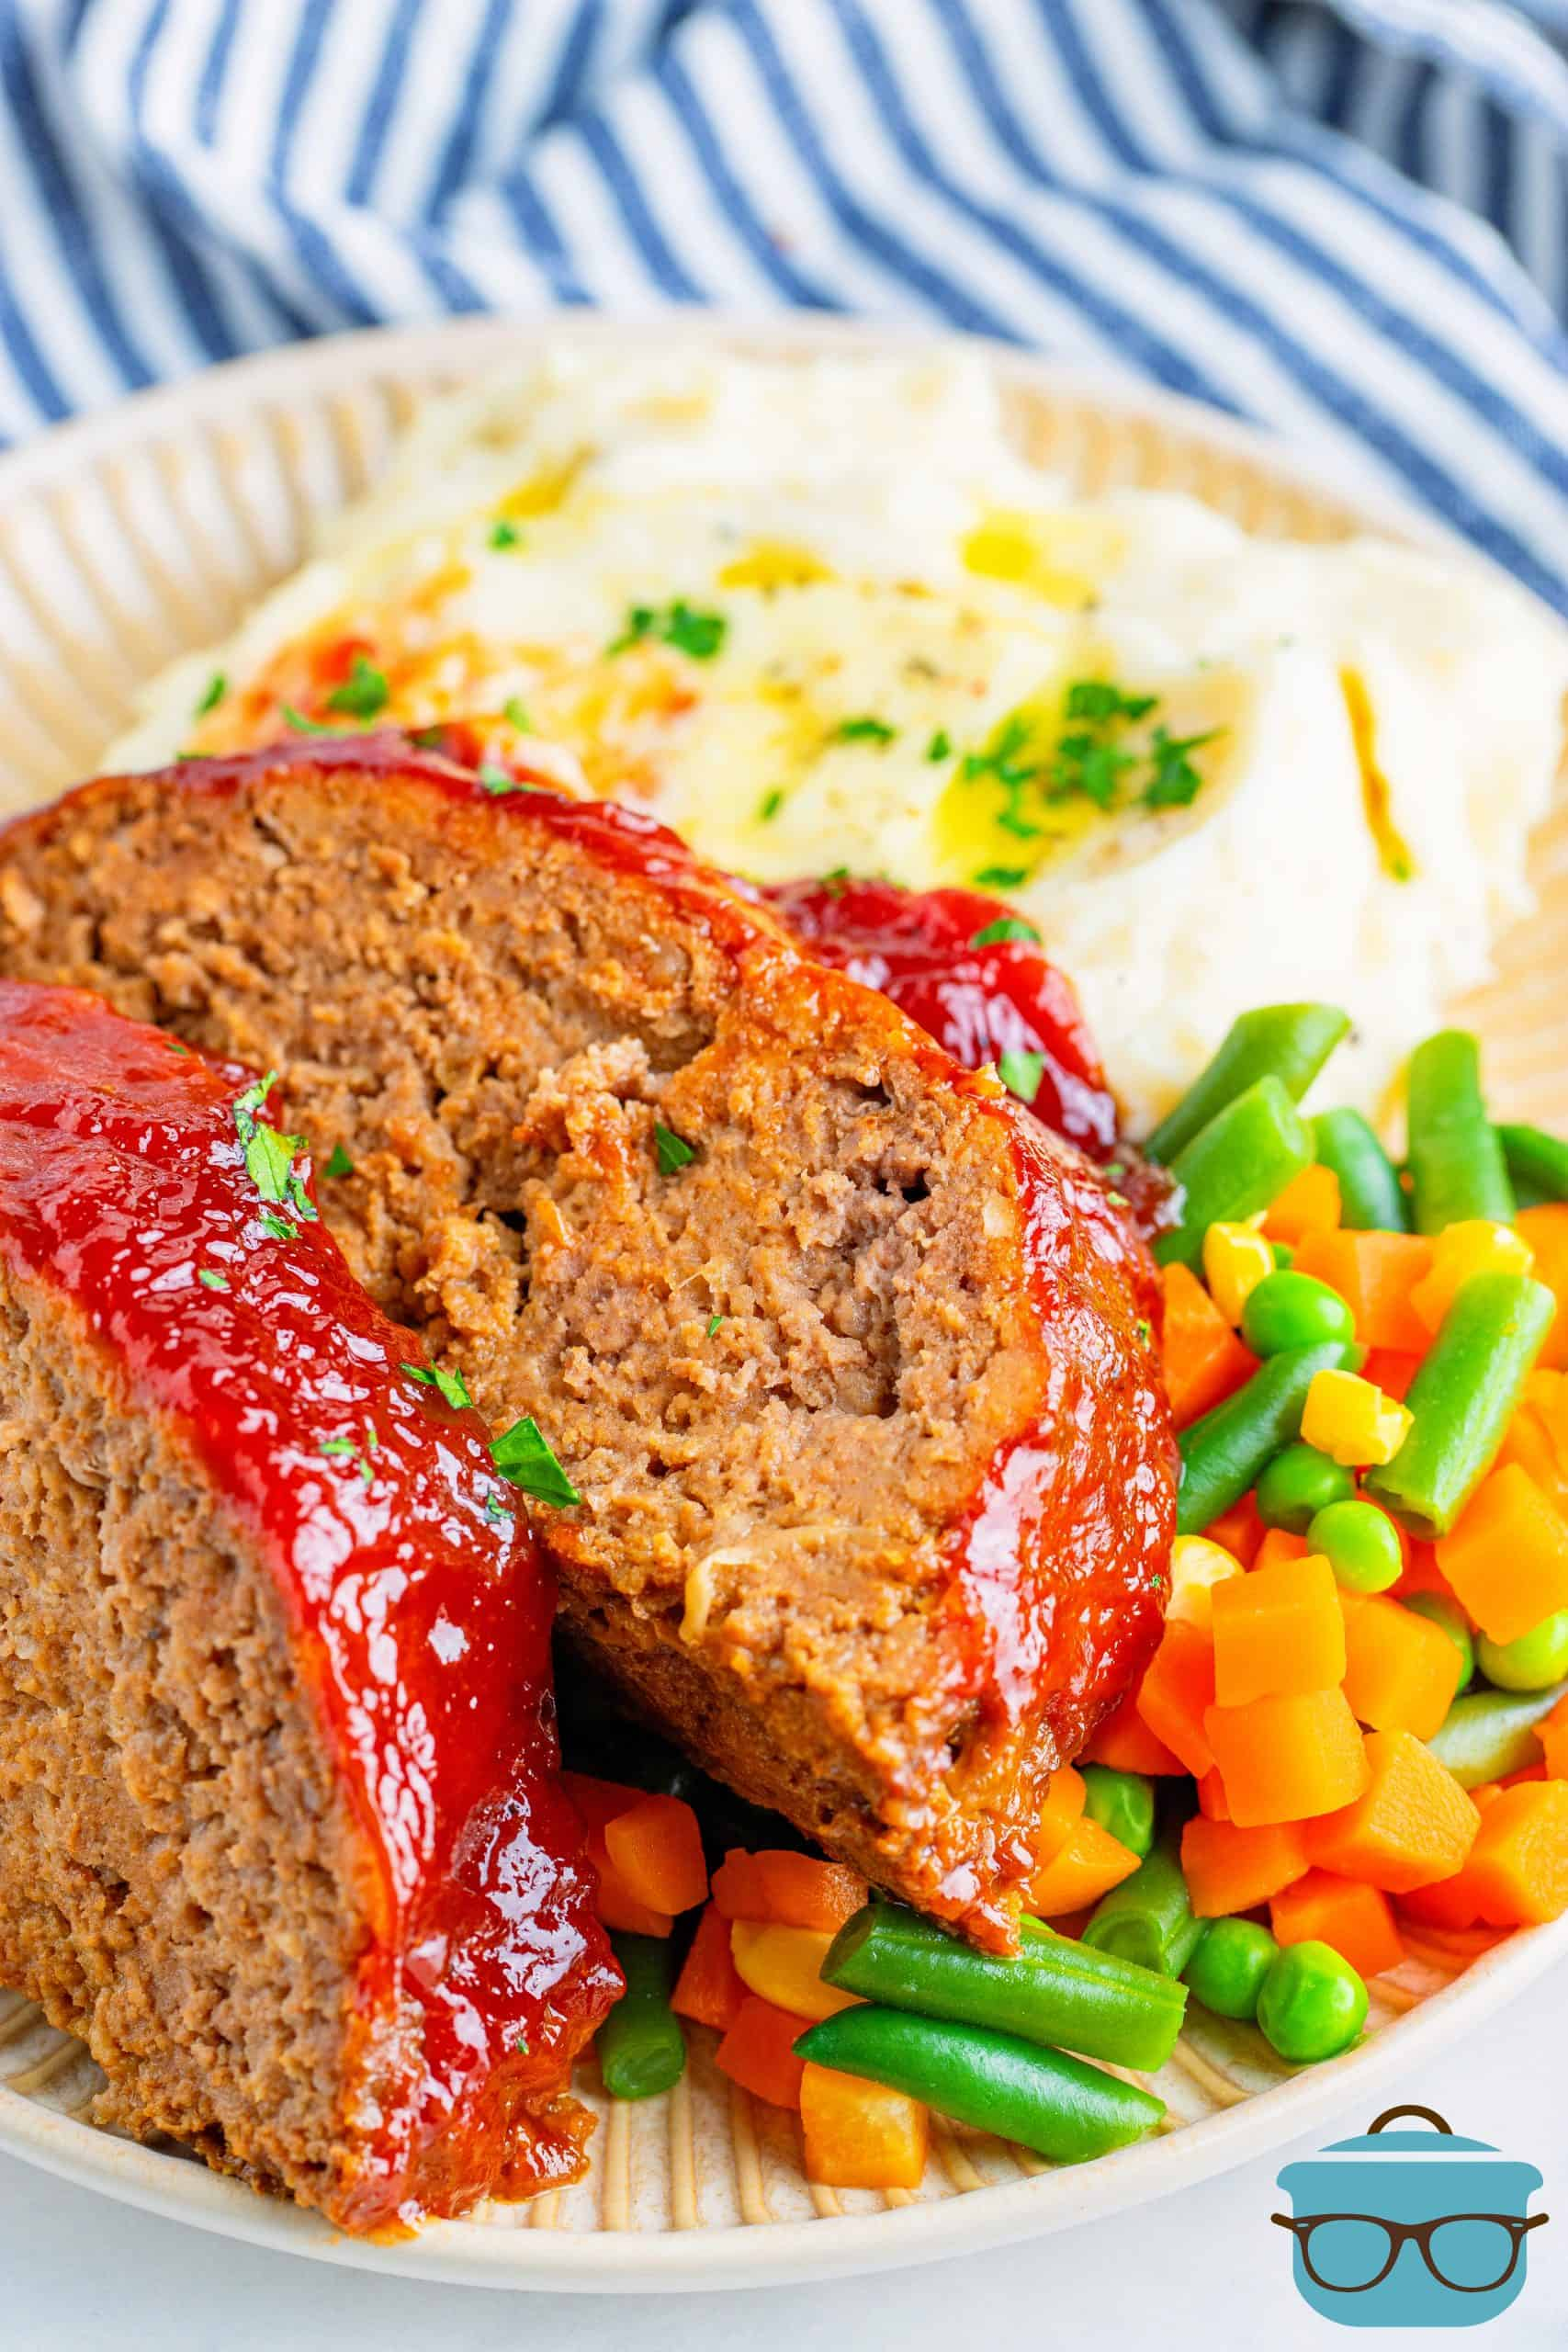 Two slices of meatloaf on top of mixed vegetables and potatoes